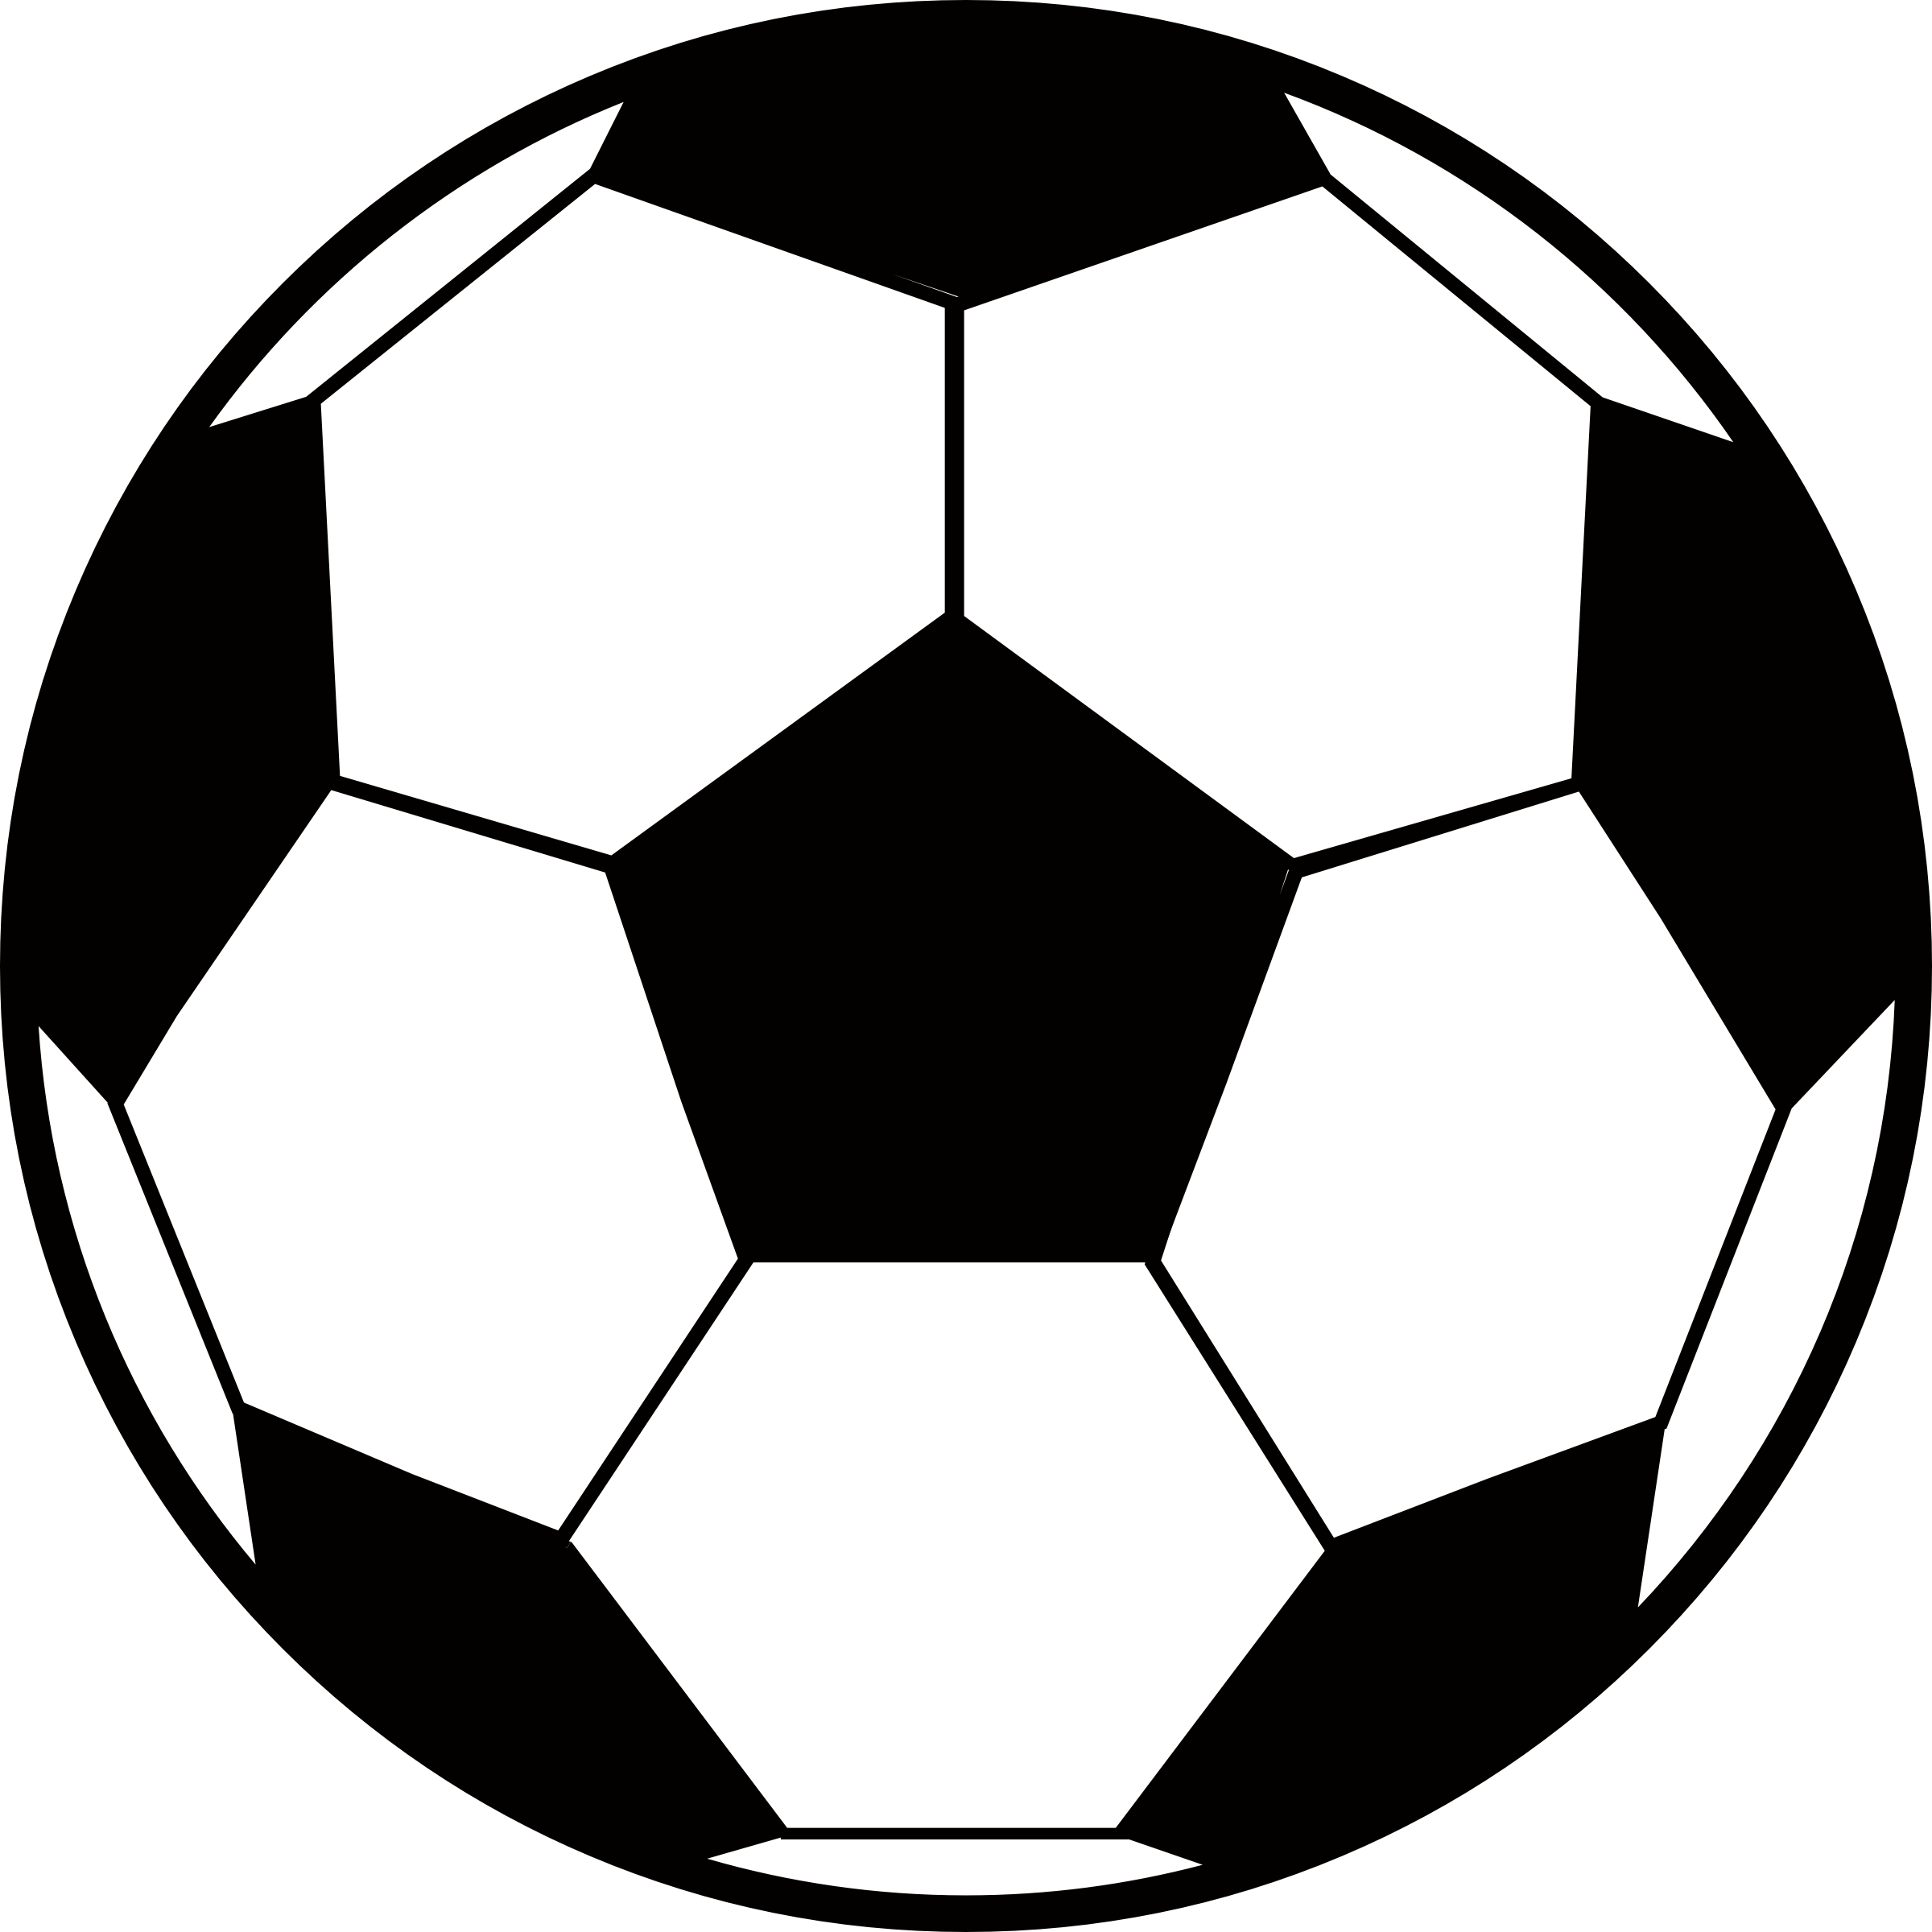 Ball clipart png library download Ball clipart clipart images gallery for free download | MyReal clip ... png library download